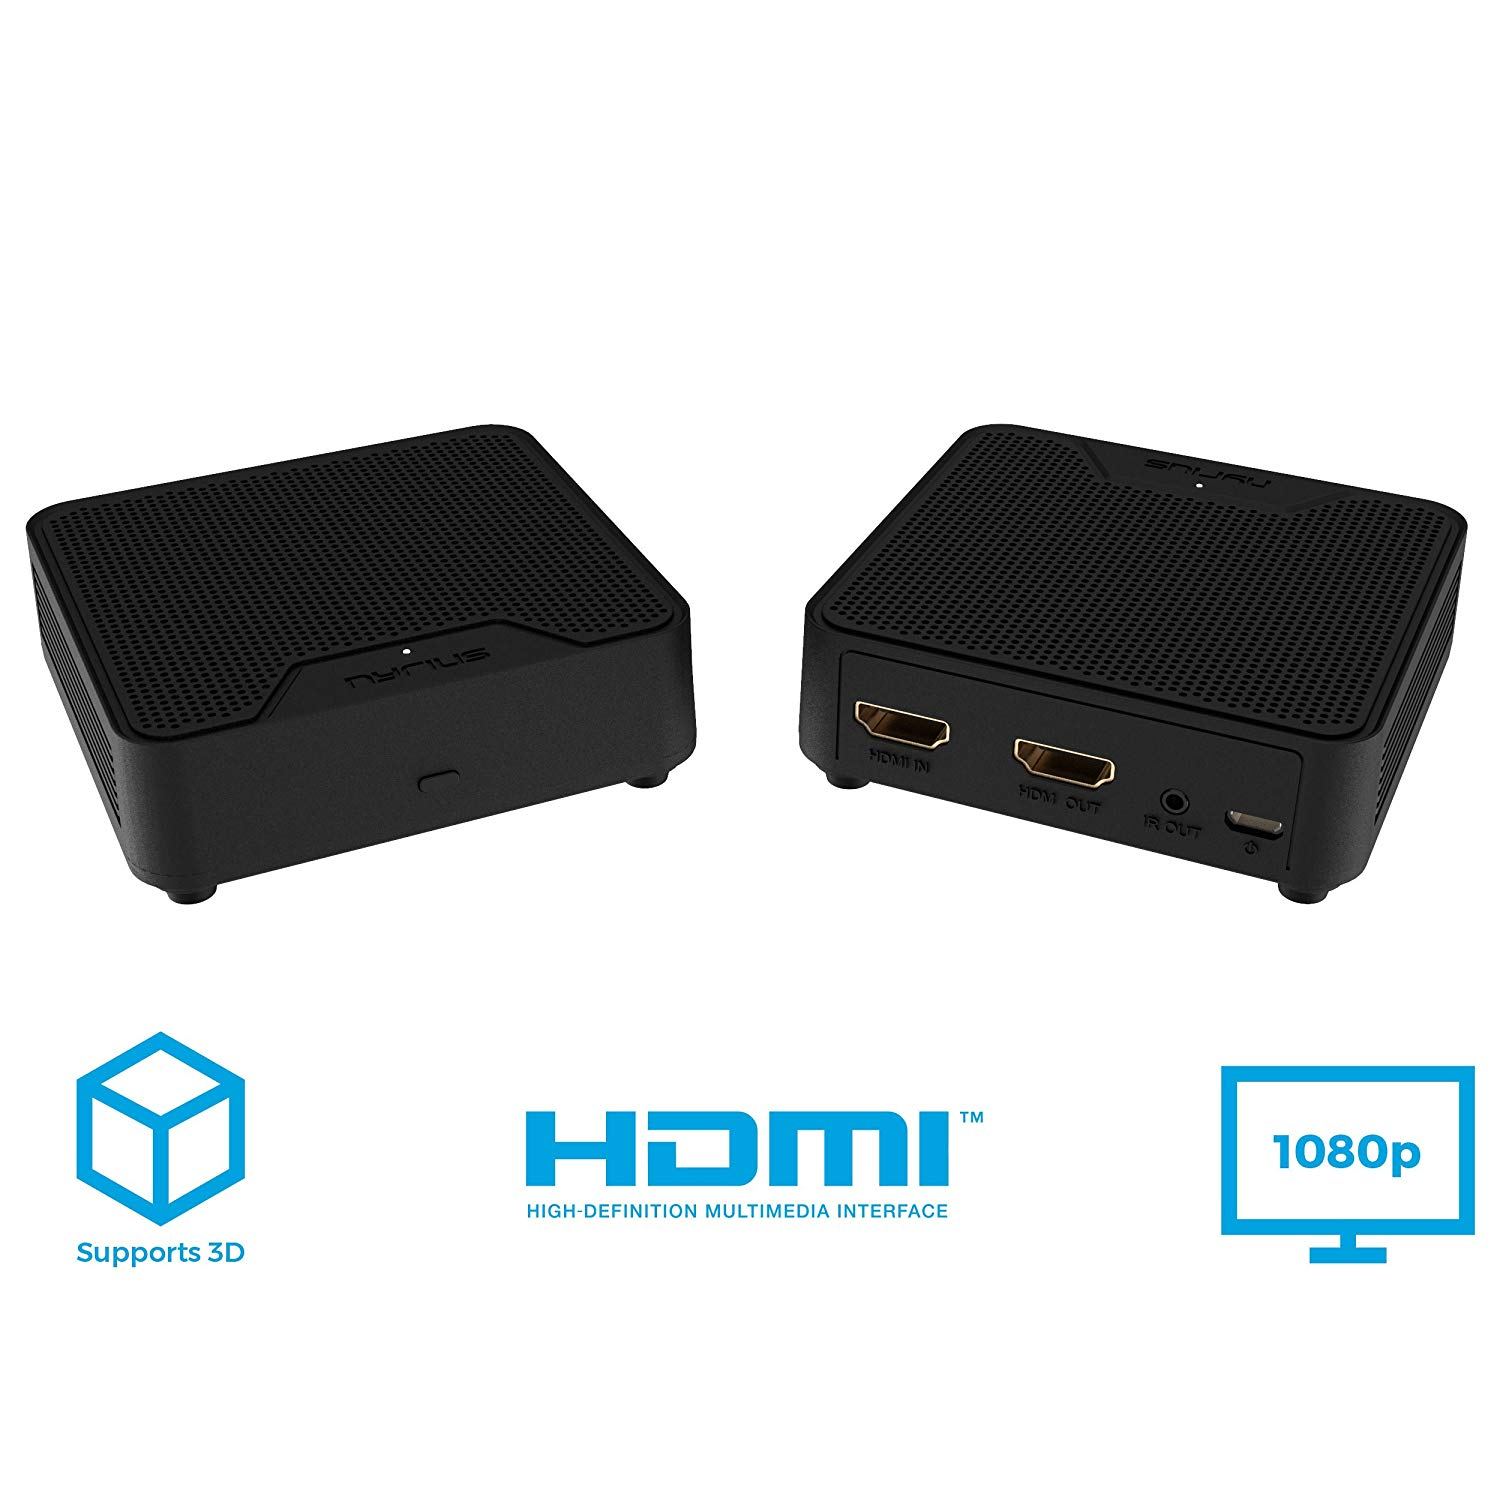 Nyrius Orion Home Wireless HDMI Video Transmitter & Receiver for Streaming HD 1080p Video & Digital Audio from A/V Receiver, Cable/Satellite Box, Blu-ray, PC to TV/Projector (WS55)